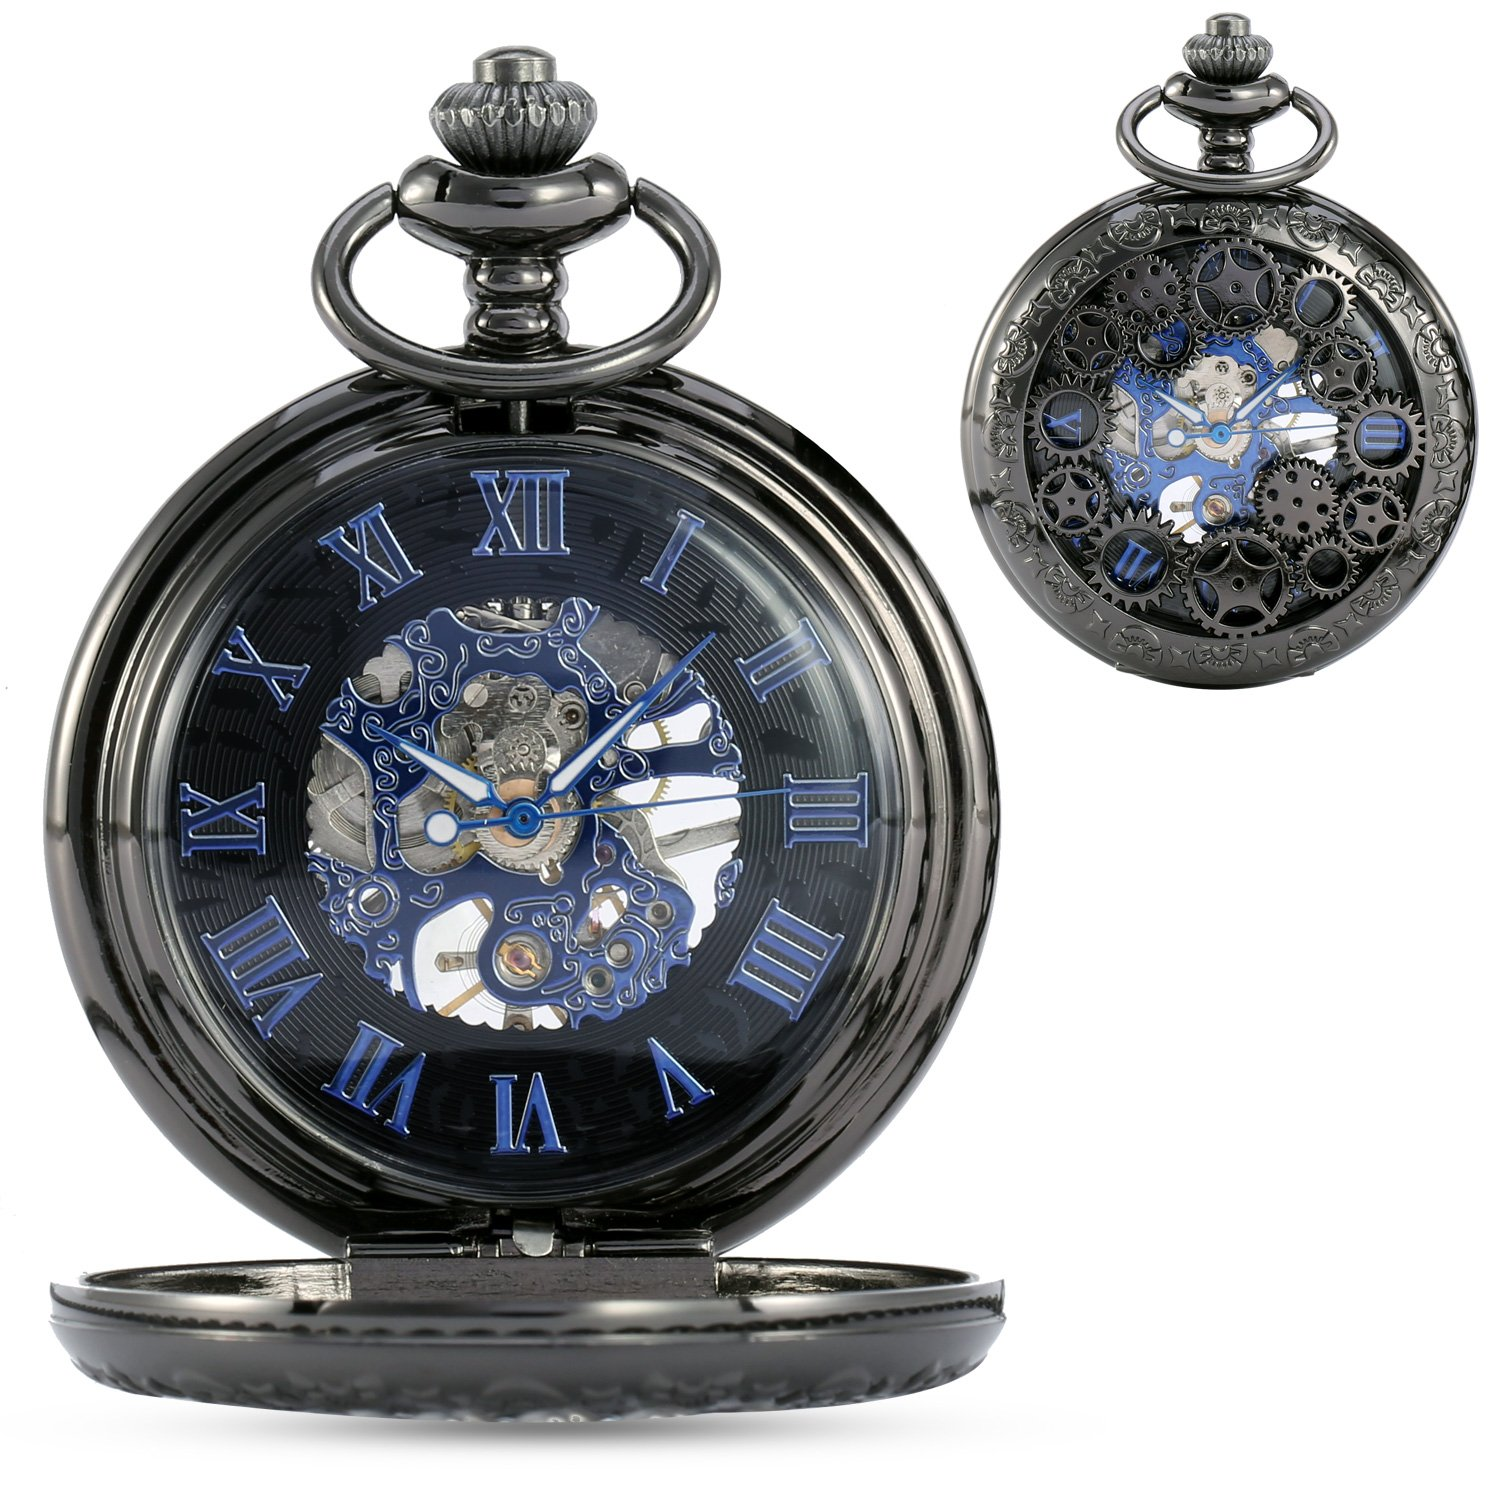 ALIENWOLF Steampunk Vintage Pocket Watch Mechanical Skeleton with Chain & Roman Numerals Analog for Special Days Gift